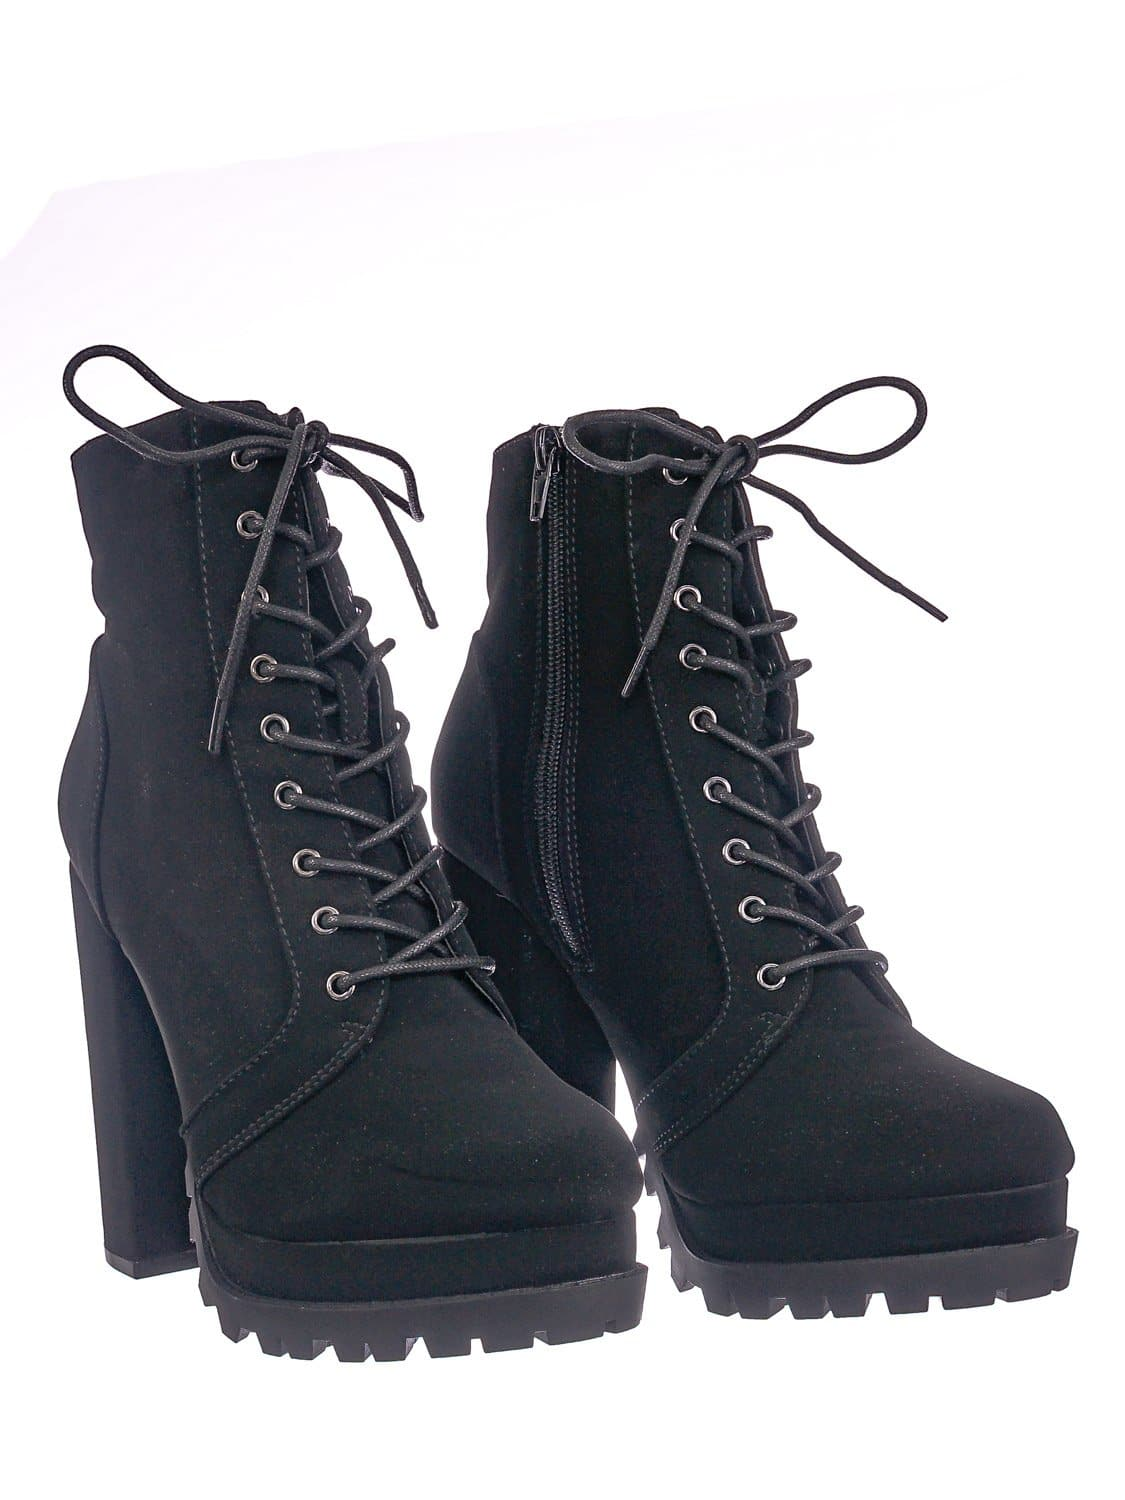 Vivian01 BlkNub Chunky Block High Heel Lug Sole Bootie -Women Ankle Lace Up Combat Boot